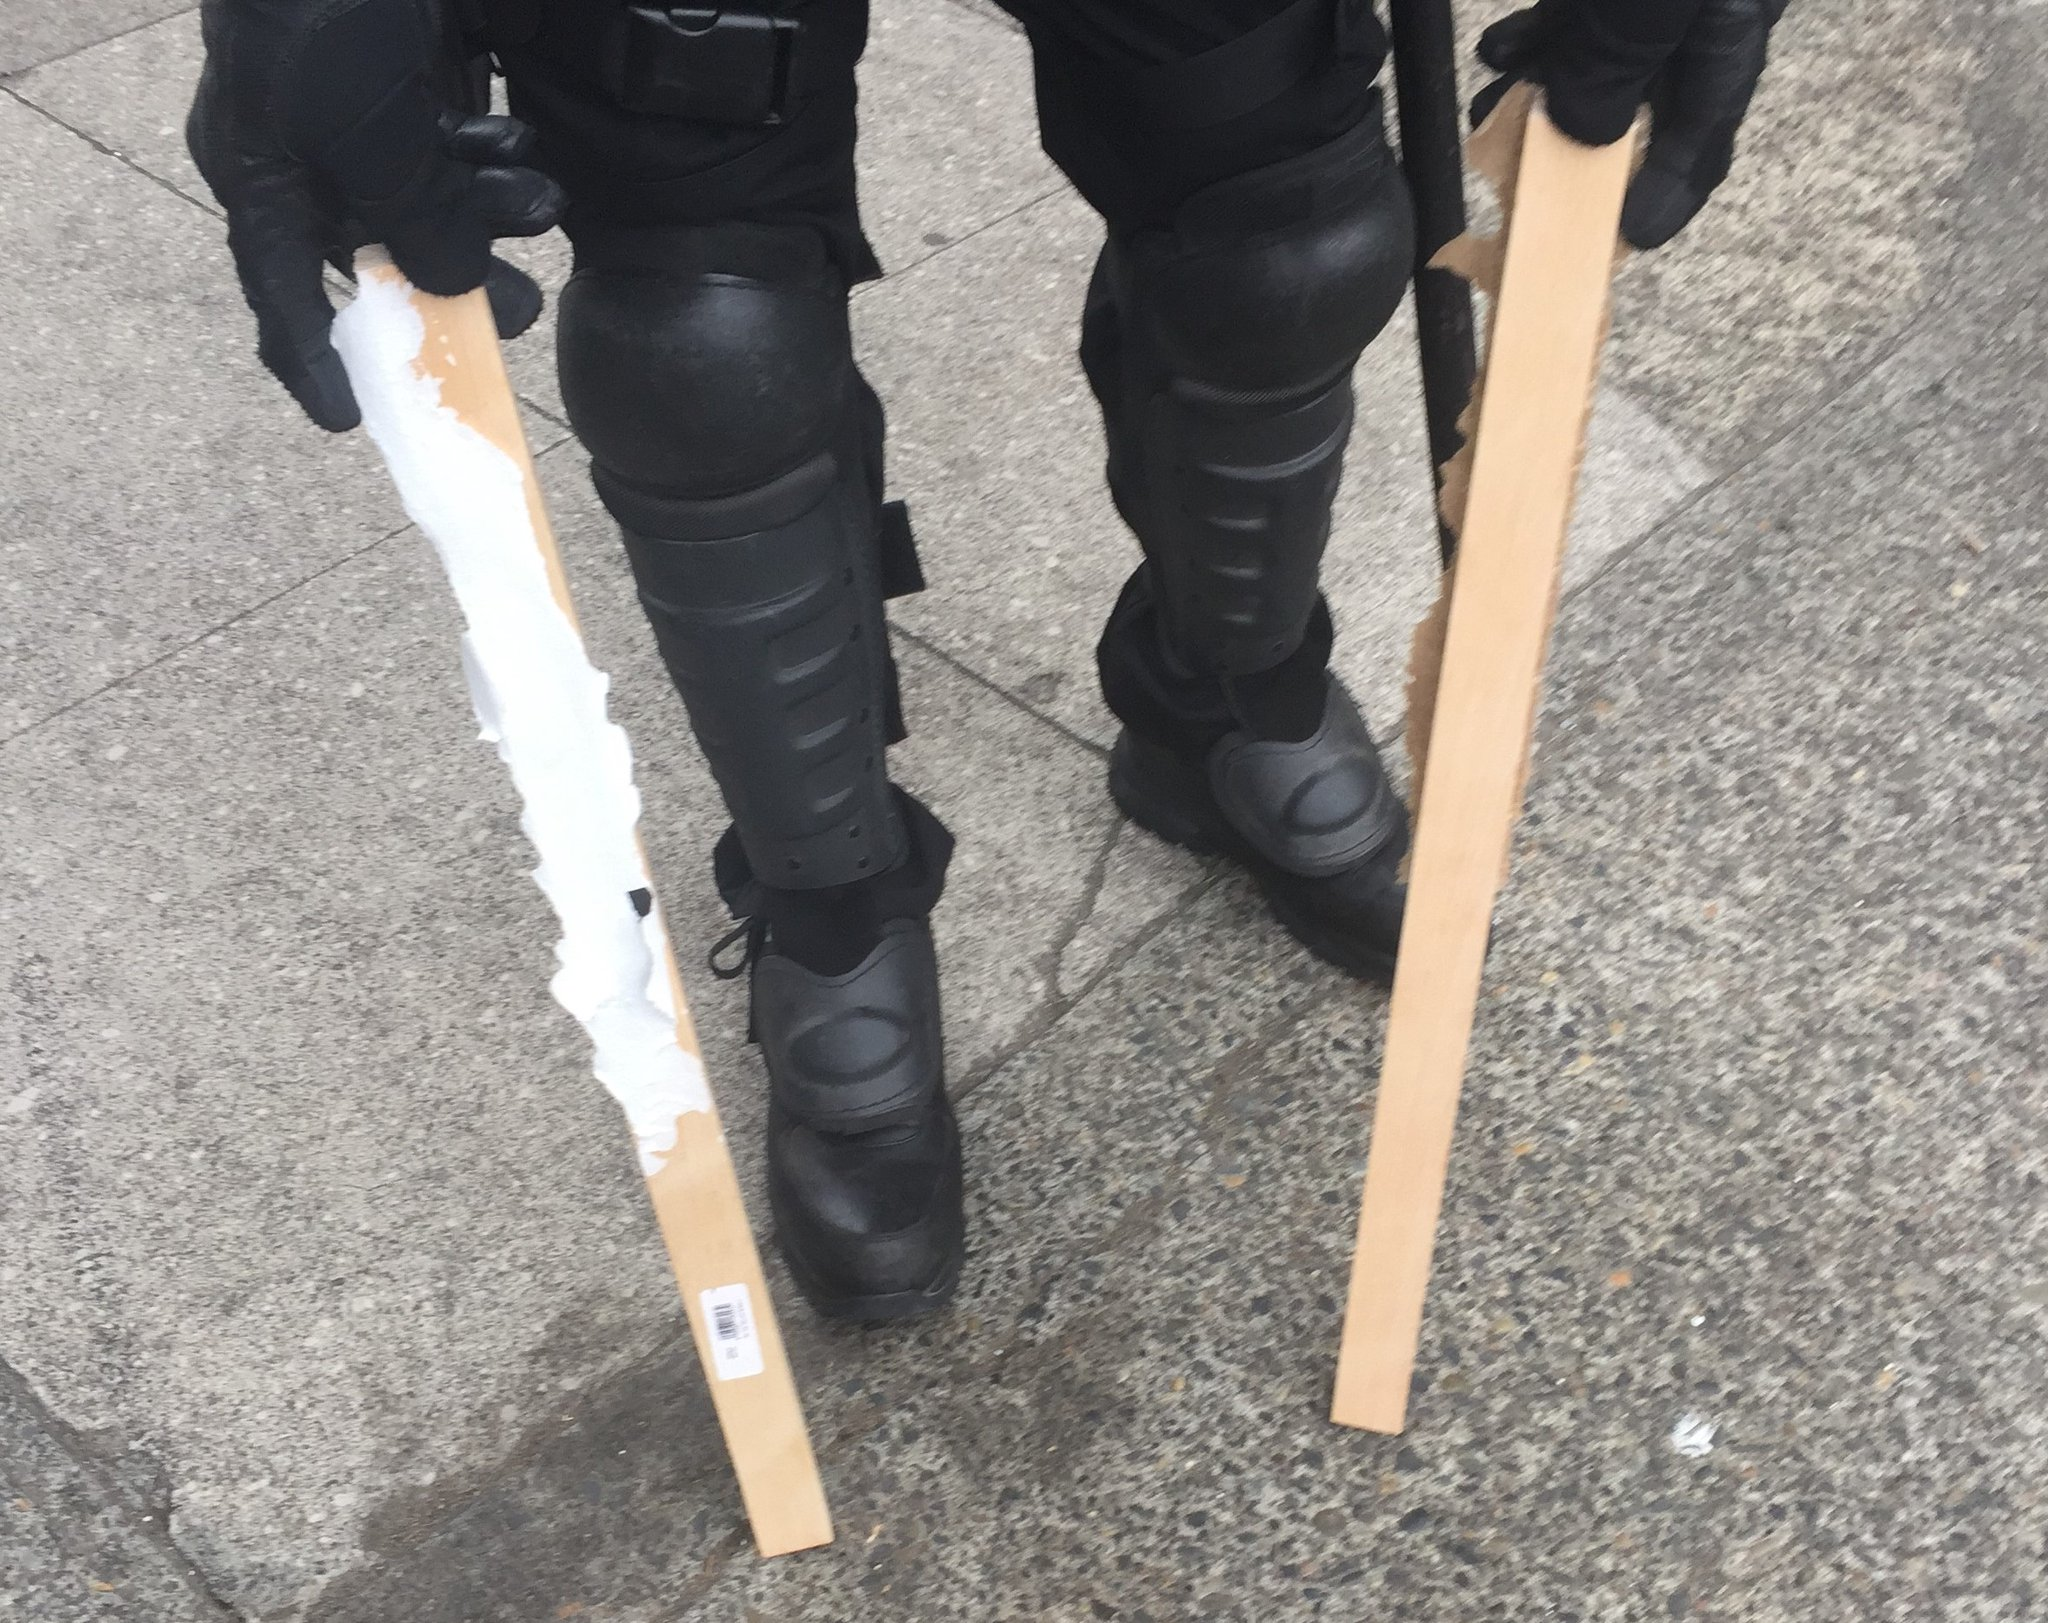 Portland Police Bureau says they seized bear spray, shields, and metal wooden poles at dueling protests on Aug. 17, 2019. KATU photo{ }